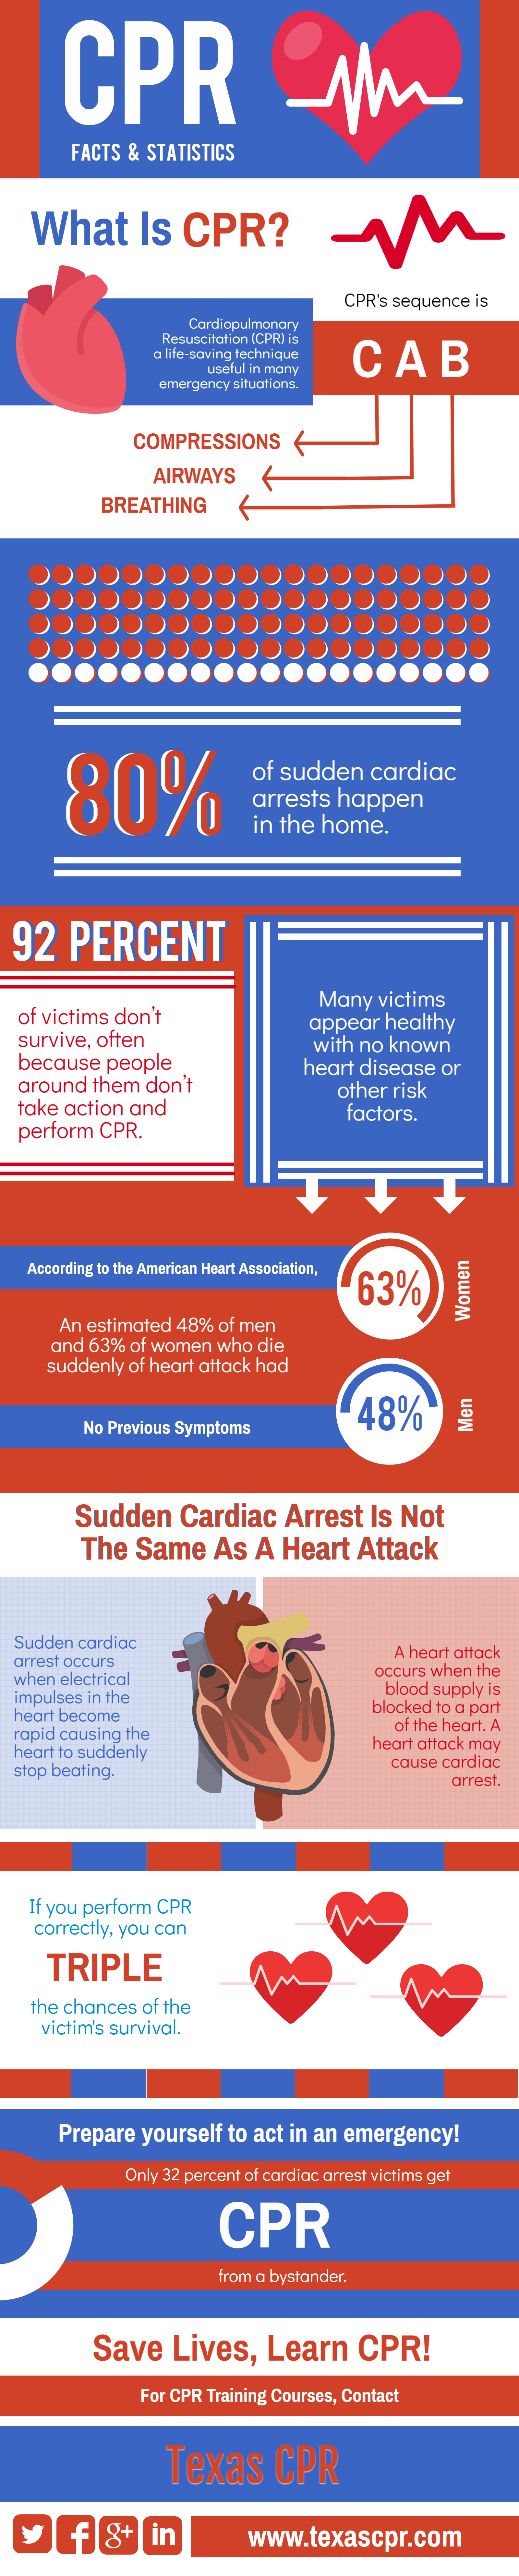 Cpr And First Aid Certification And Training Classes For Dallas